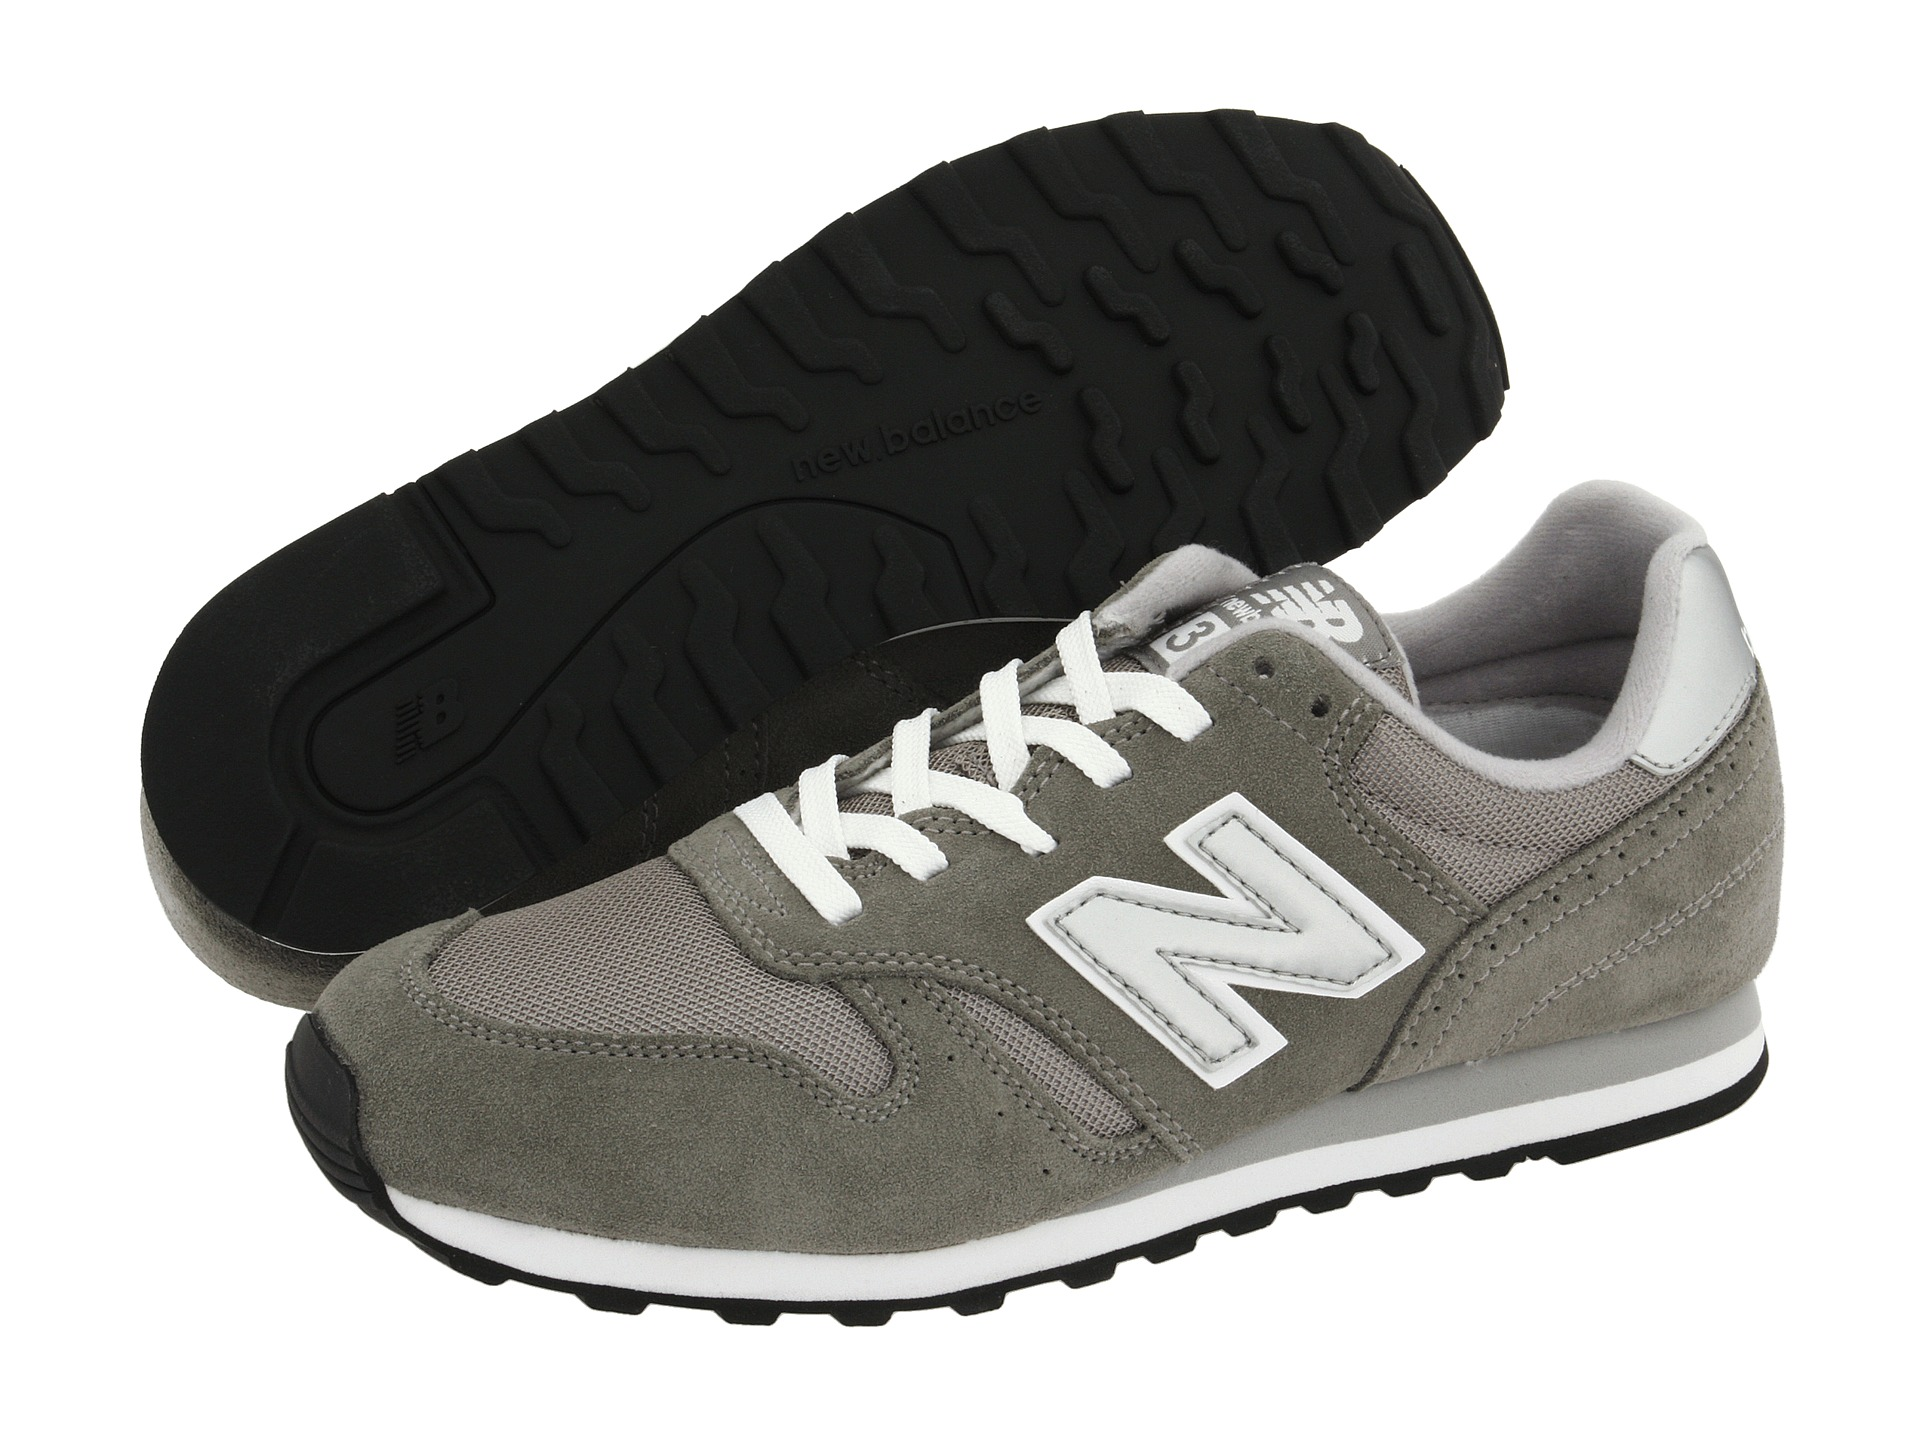 new balance vegan tennis shoes